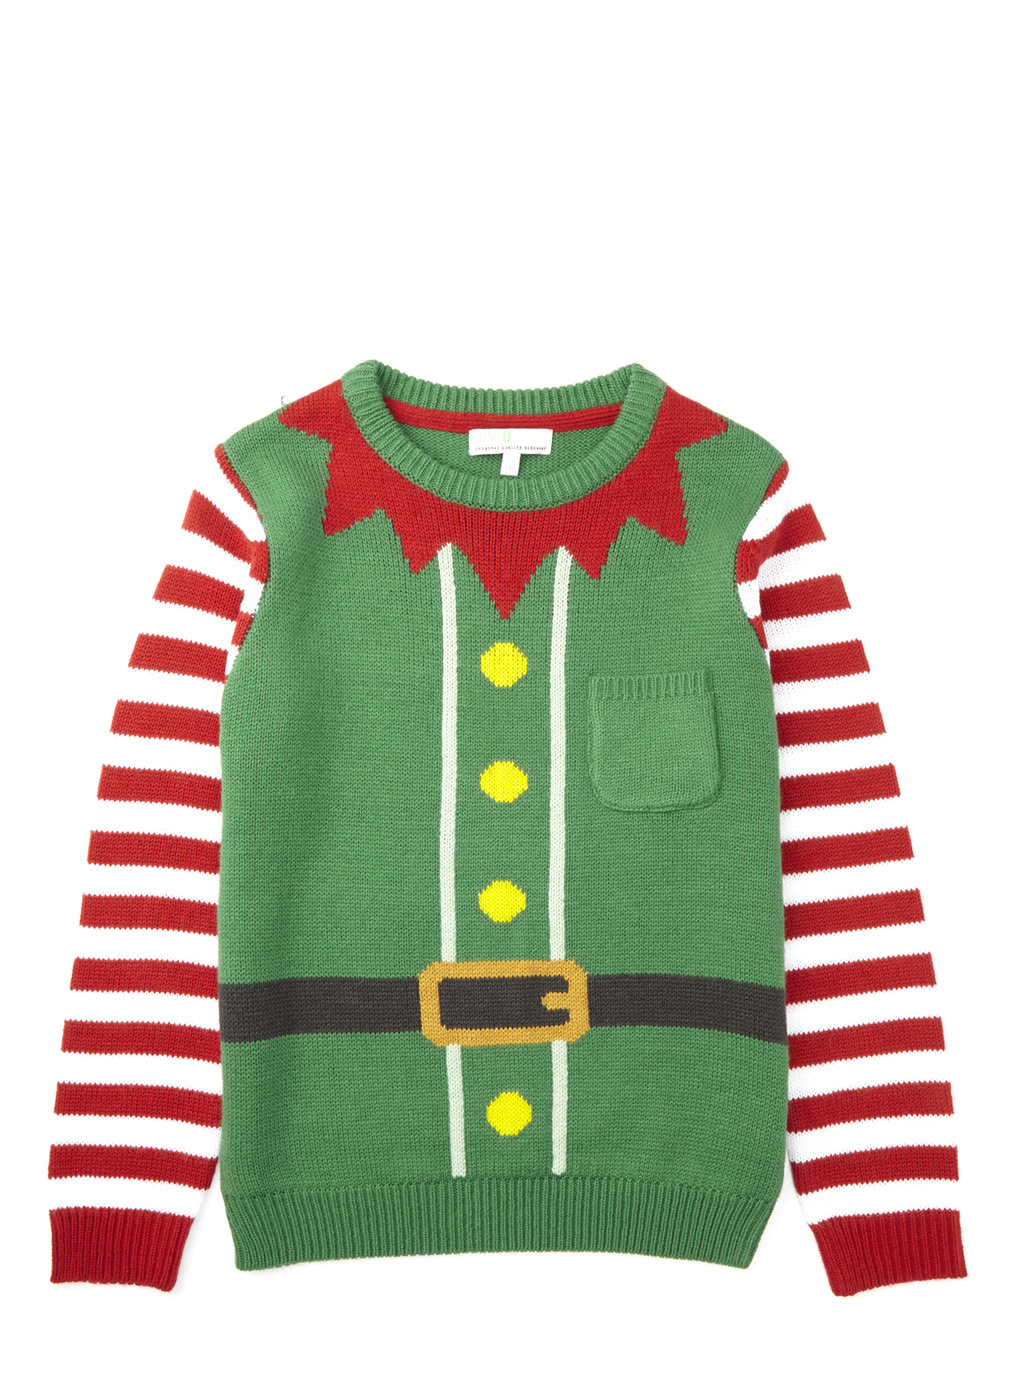 The Latest Christmas Jumpers. Christmas Jumpers are now very much part of the run-up to Christmas. Lots of schools celebrate Save The Children's Christmas Jumper thritingetqay.cf my experience, you need to get these early. I've been to the shops with my children to buy a Christmas Jumper and found nothing in their size.